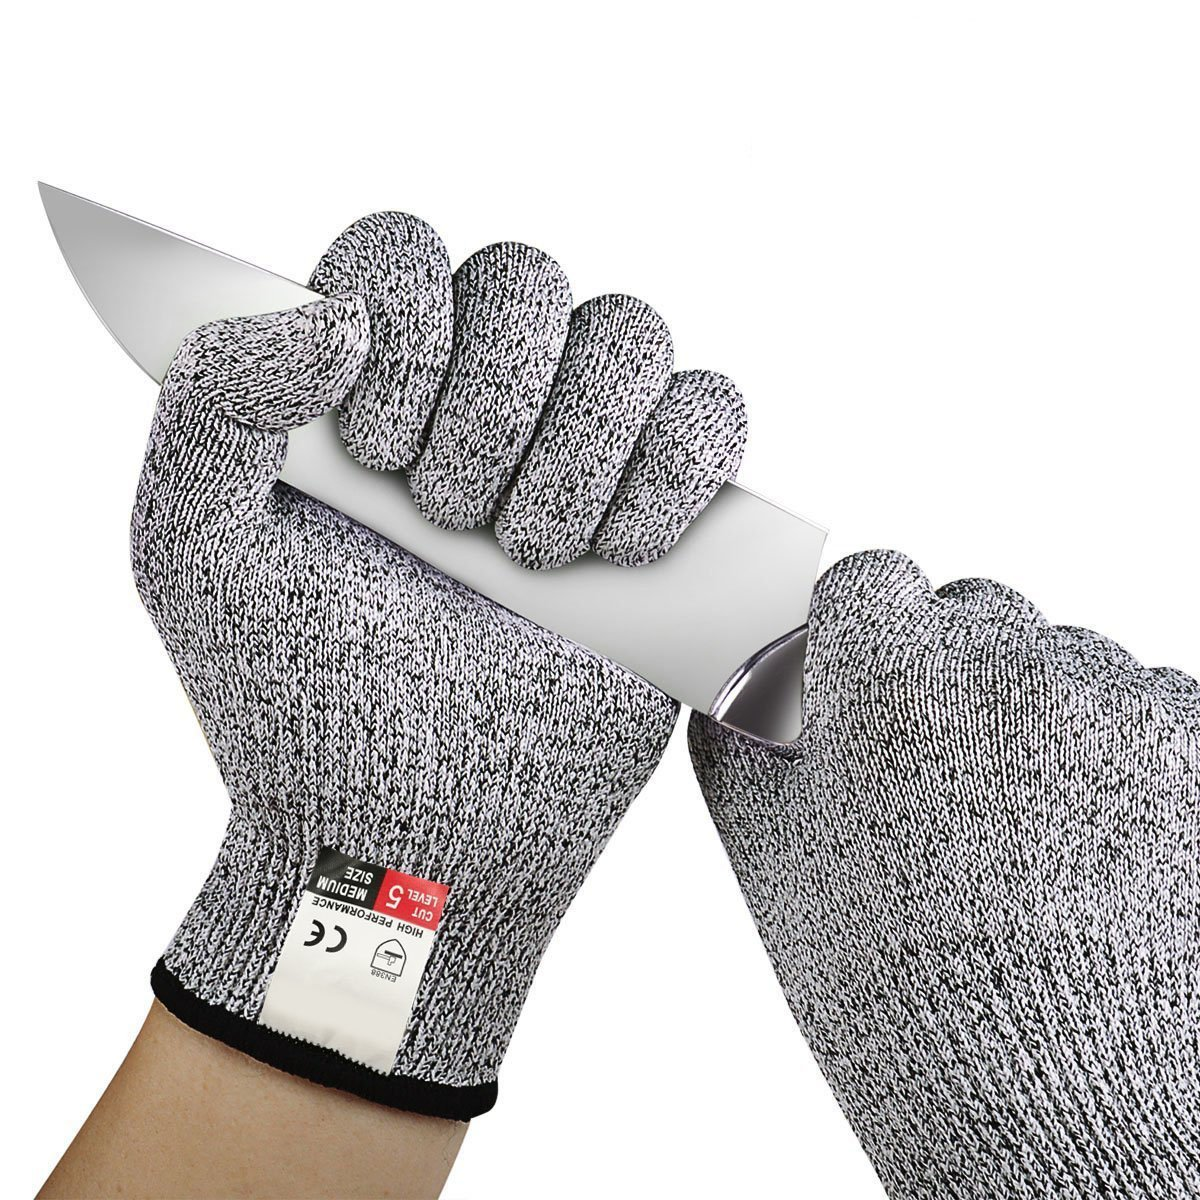 SAYGOGO Cut Resistant Gloves - High Performance Level 5 Protection, Food Grade. Size Medium